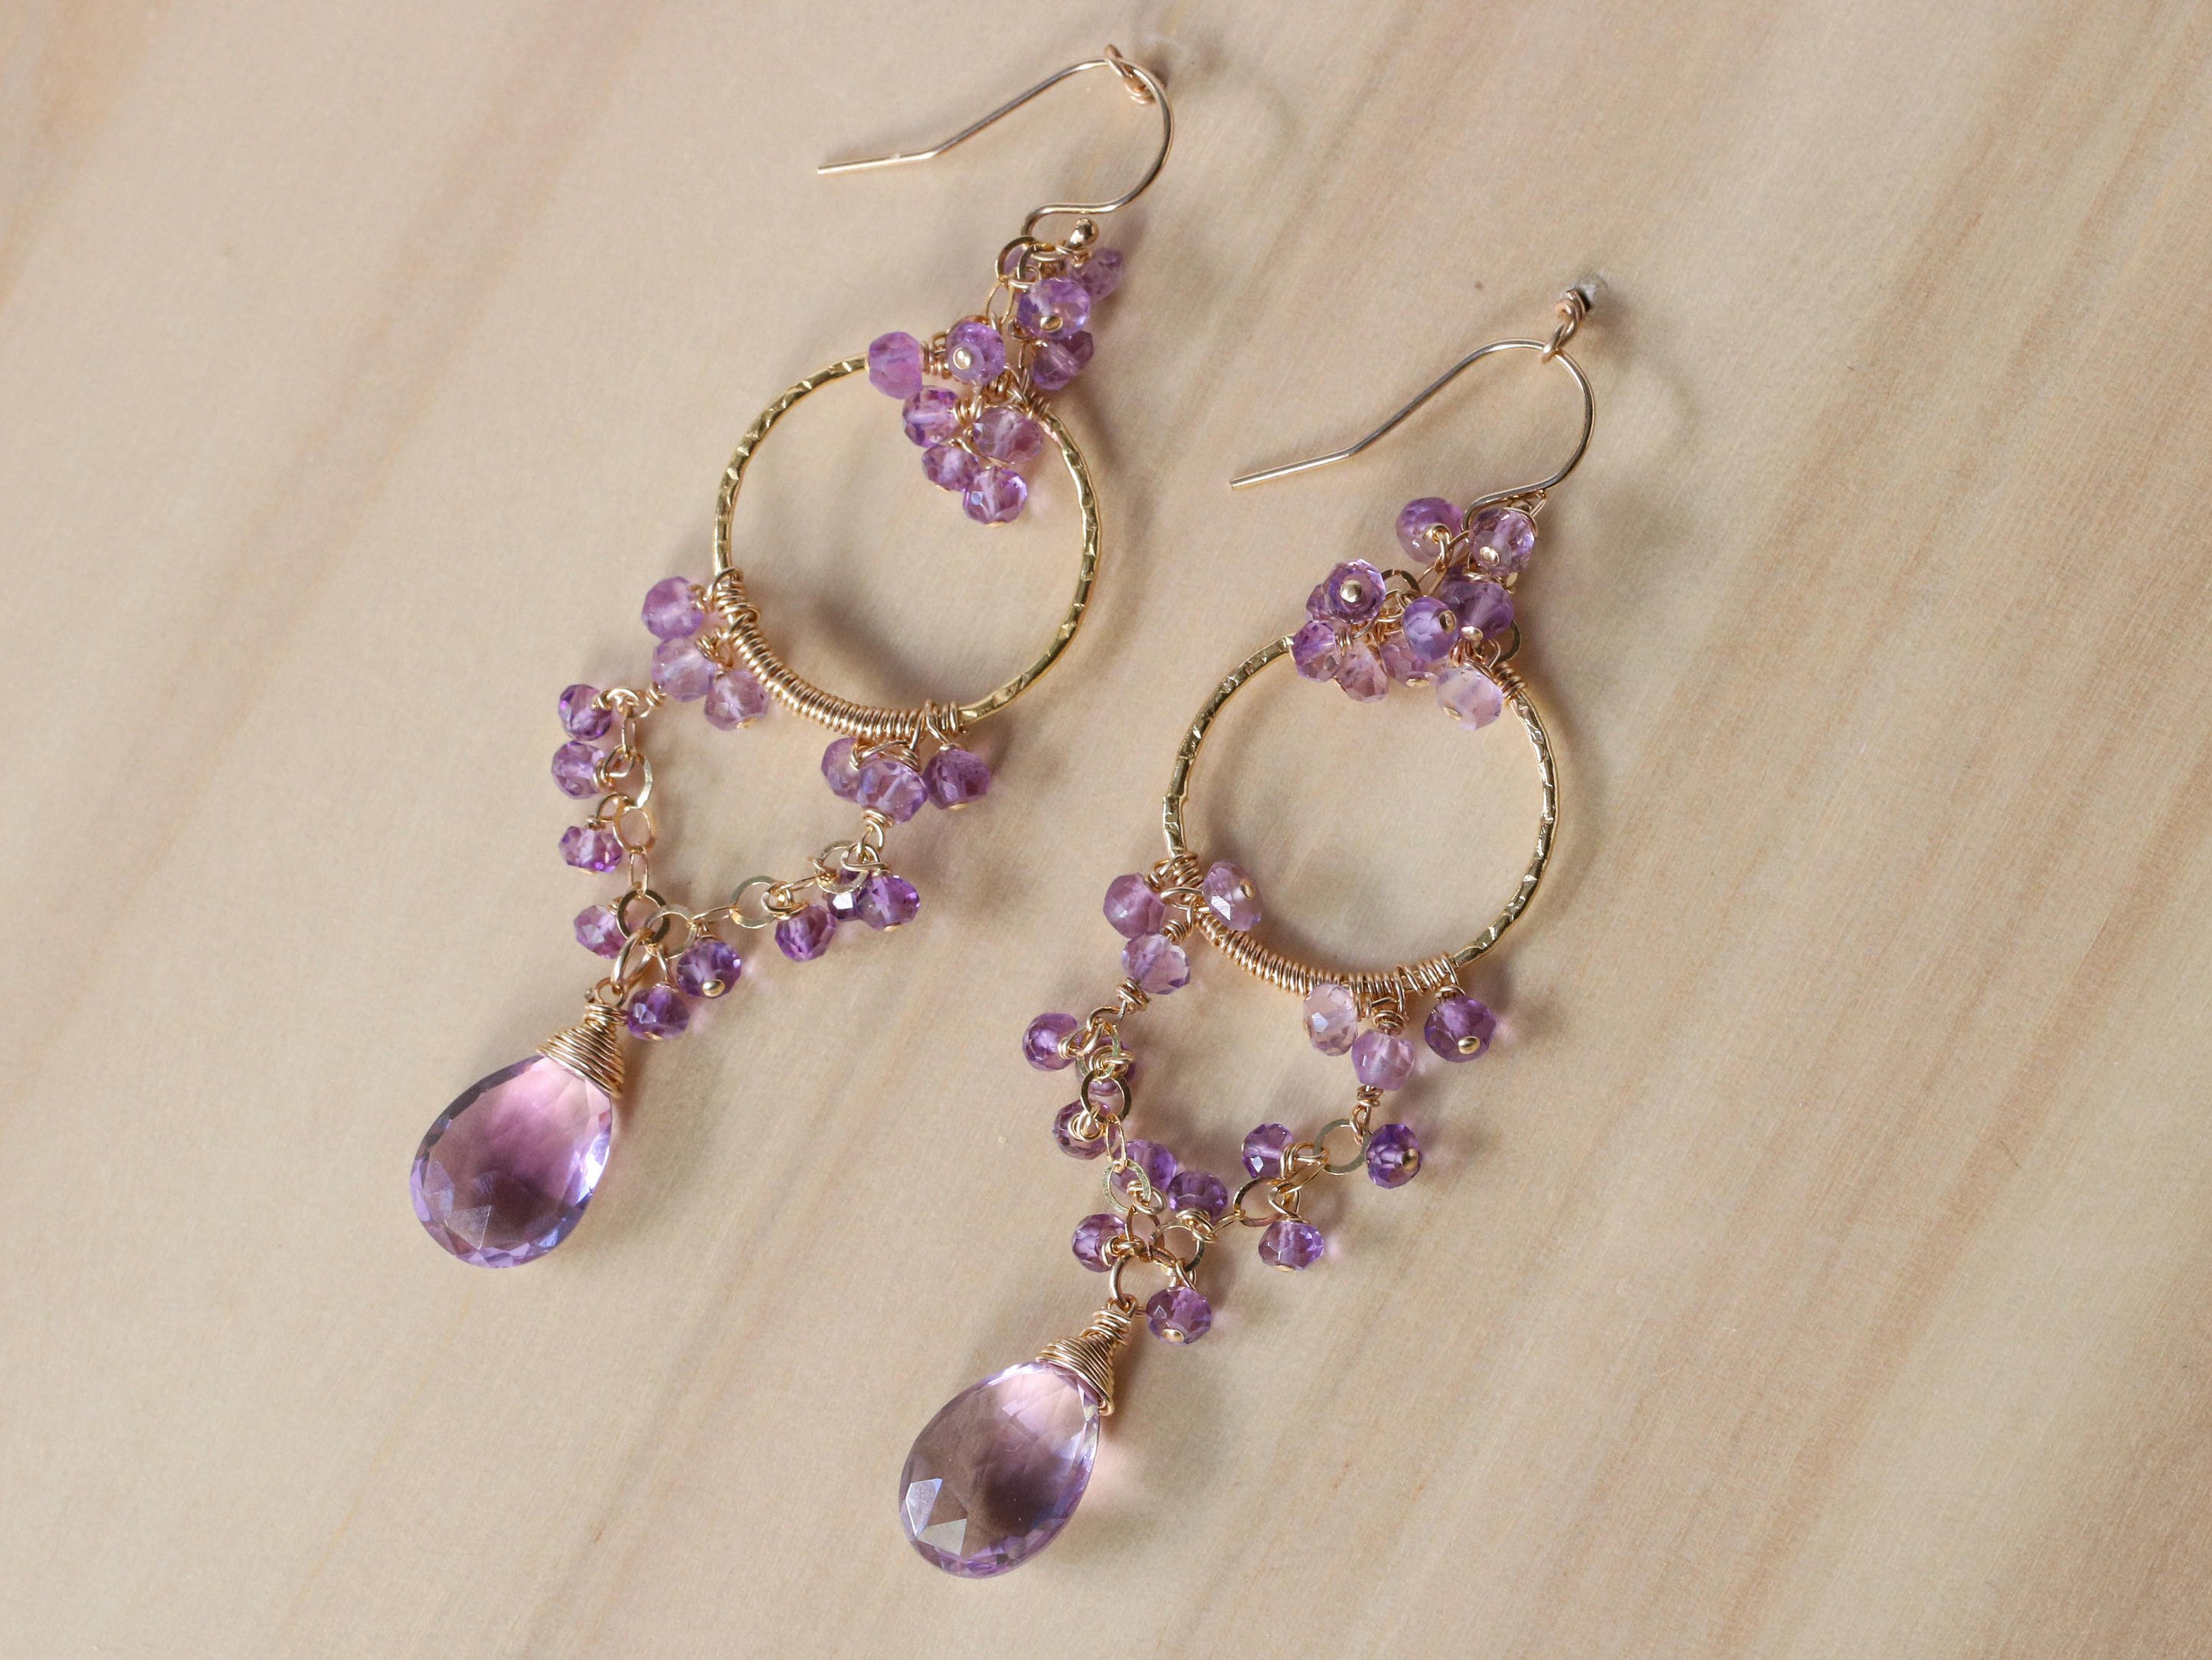 Pink Amethyst Chandelier Earrings in Gold Filled - Valltasy